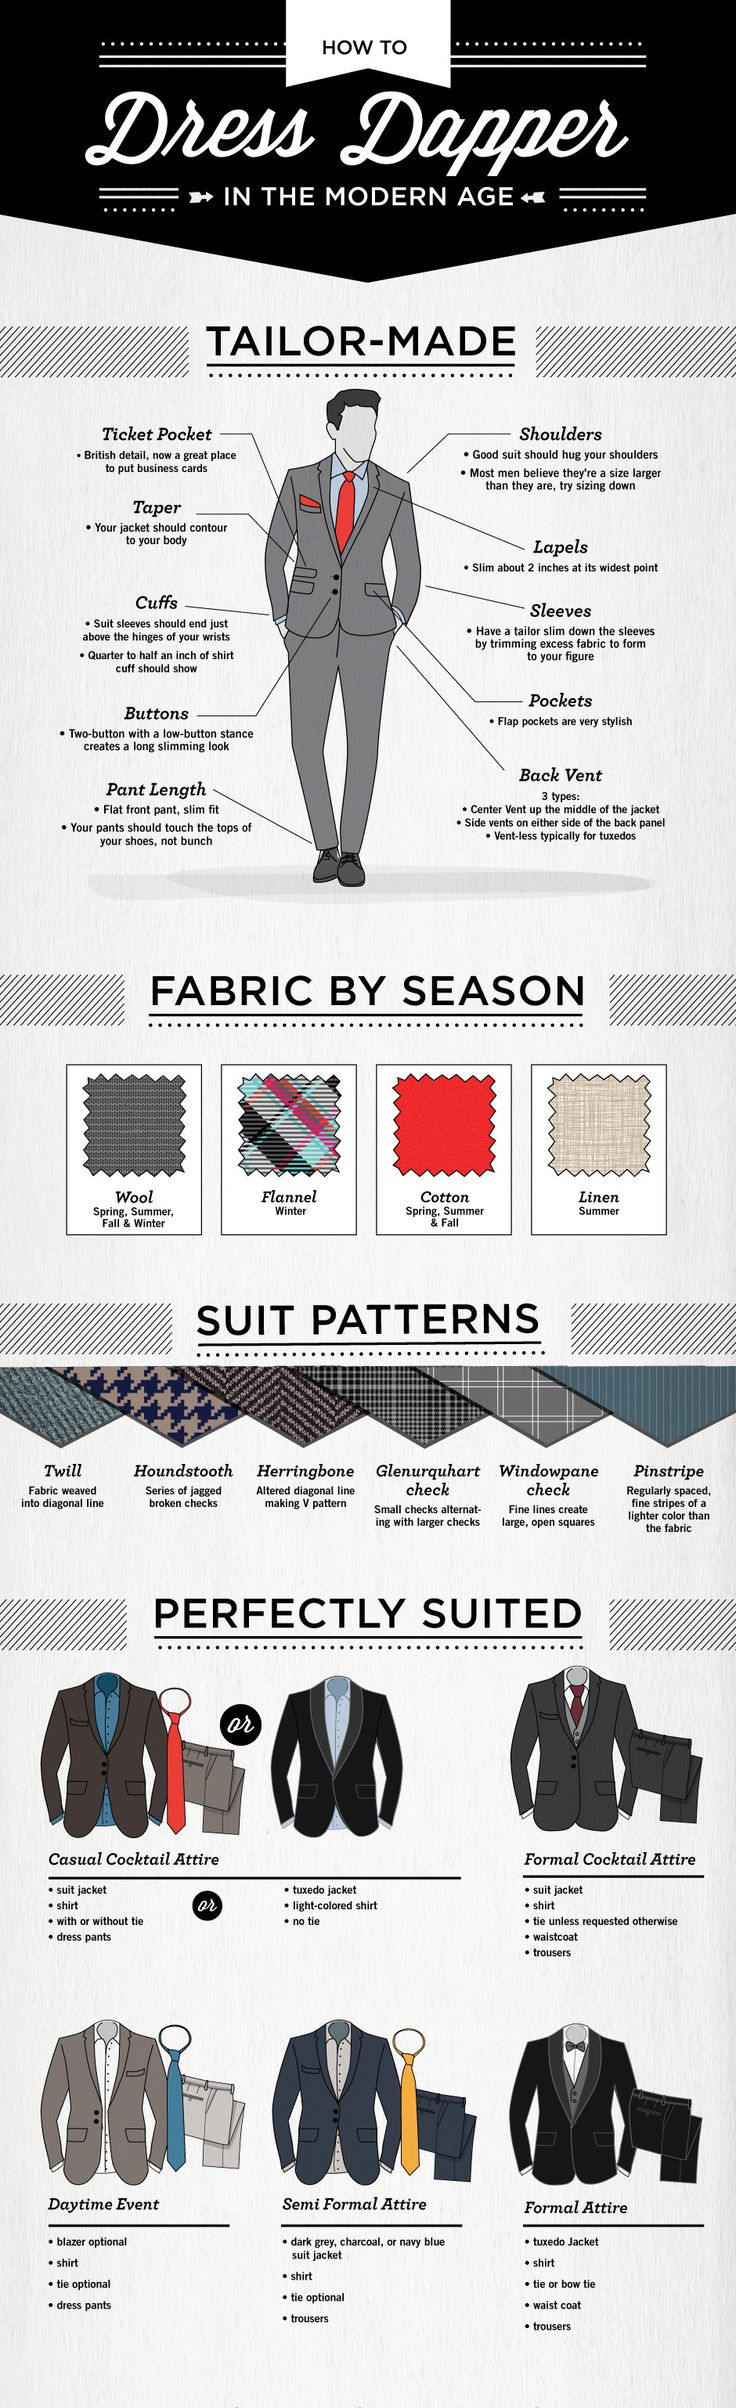 How to Dress Dapper in the Modern Age.   Follow us! - http://starshipseraphm.blogspot.com/p/home.html